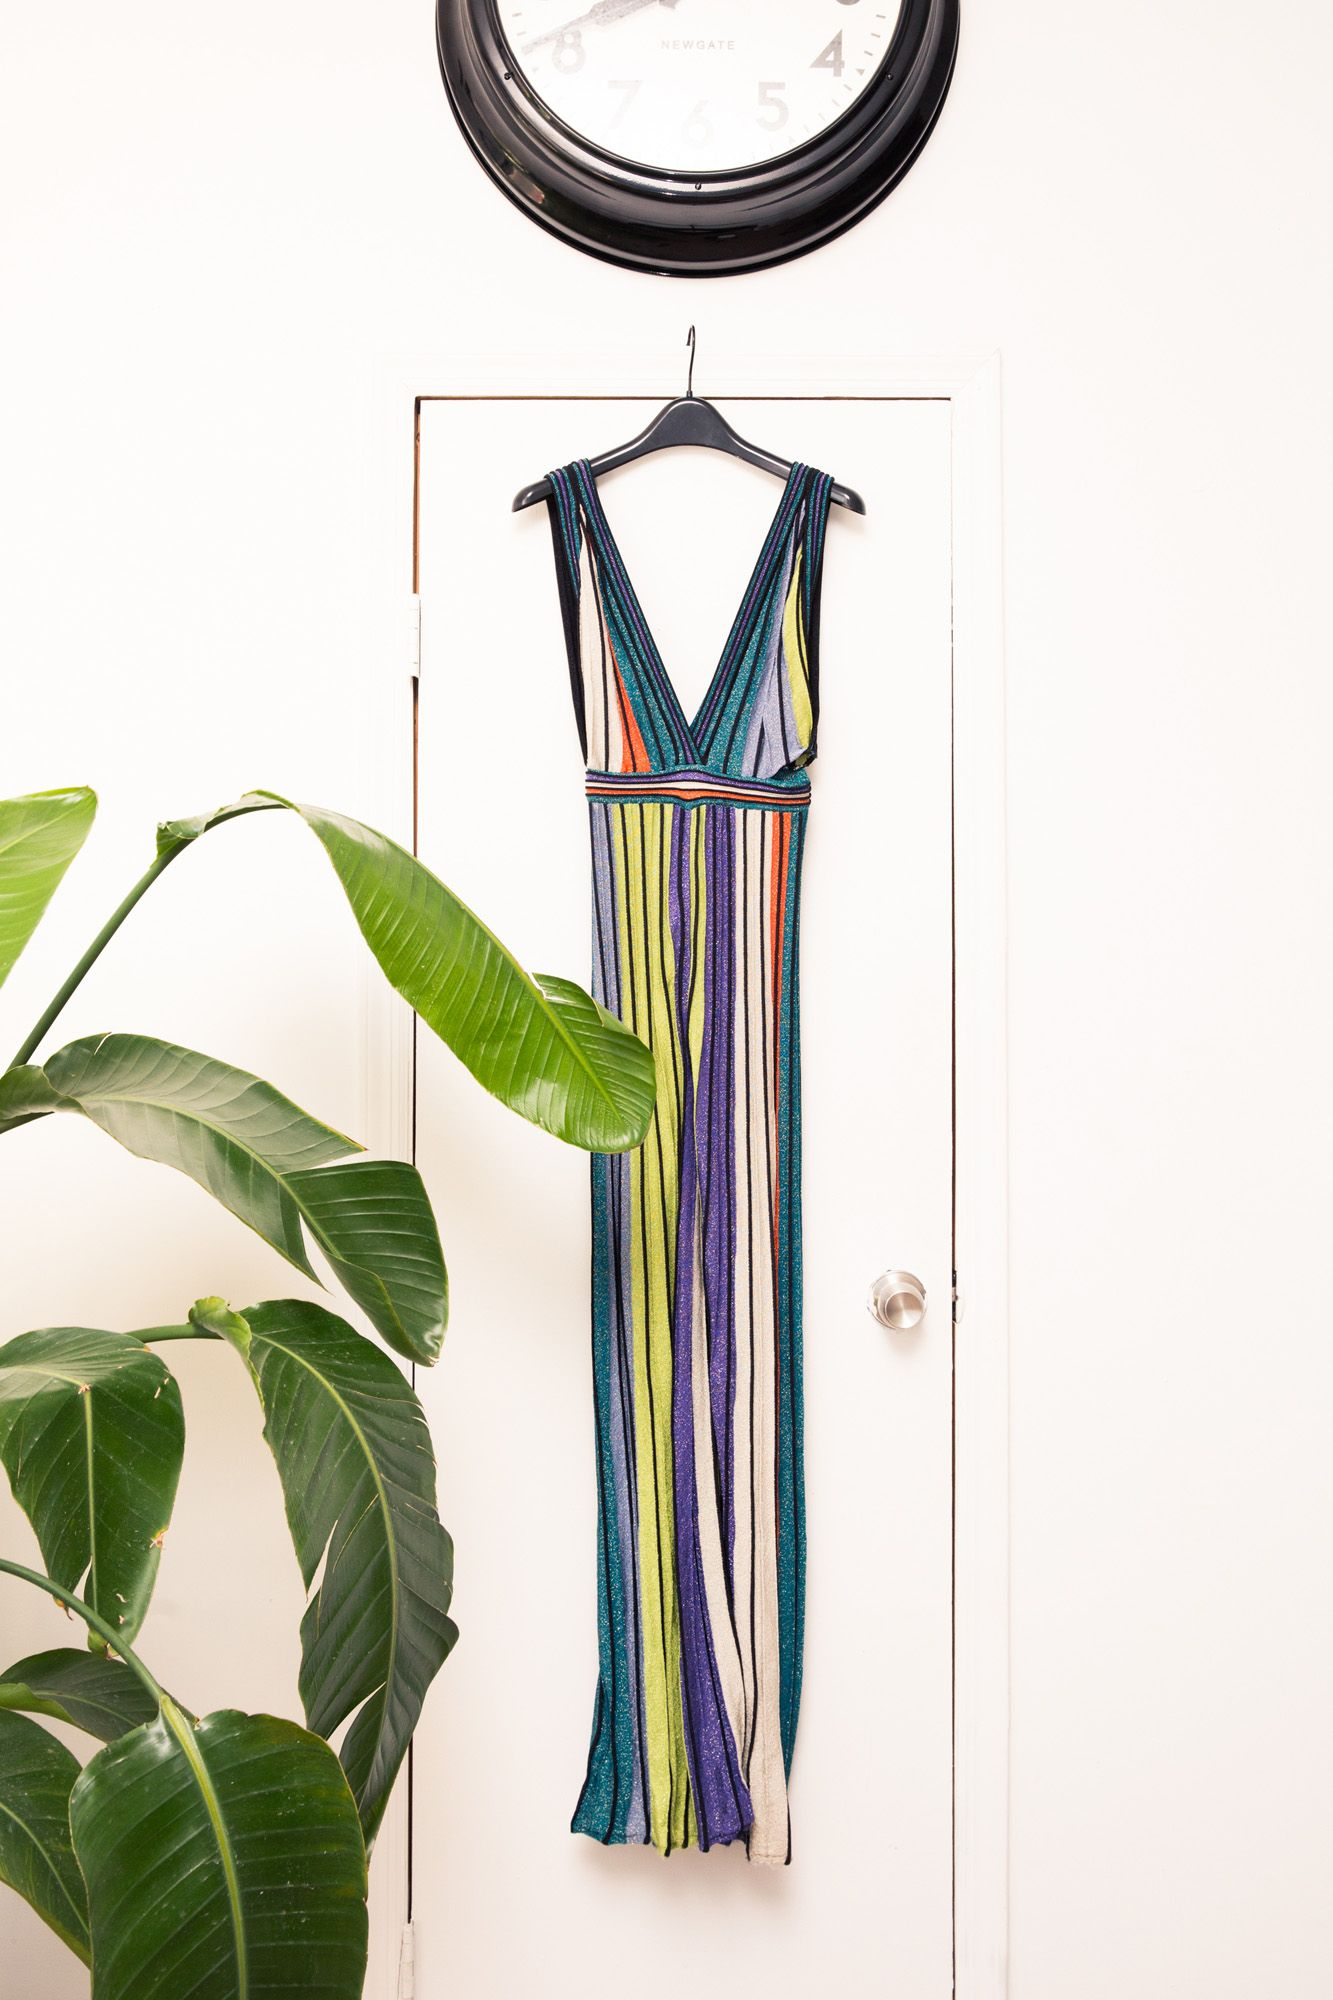 Inside The Closet of  The Cut Fashion Editor Lindsay Peoples: Lindsay Peoples on working two jobs while interning, wearing furs as a toddler, and faux pushes for diversity in fashion. -- Striped blue, yellow and green dress.  | Coveteur.com